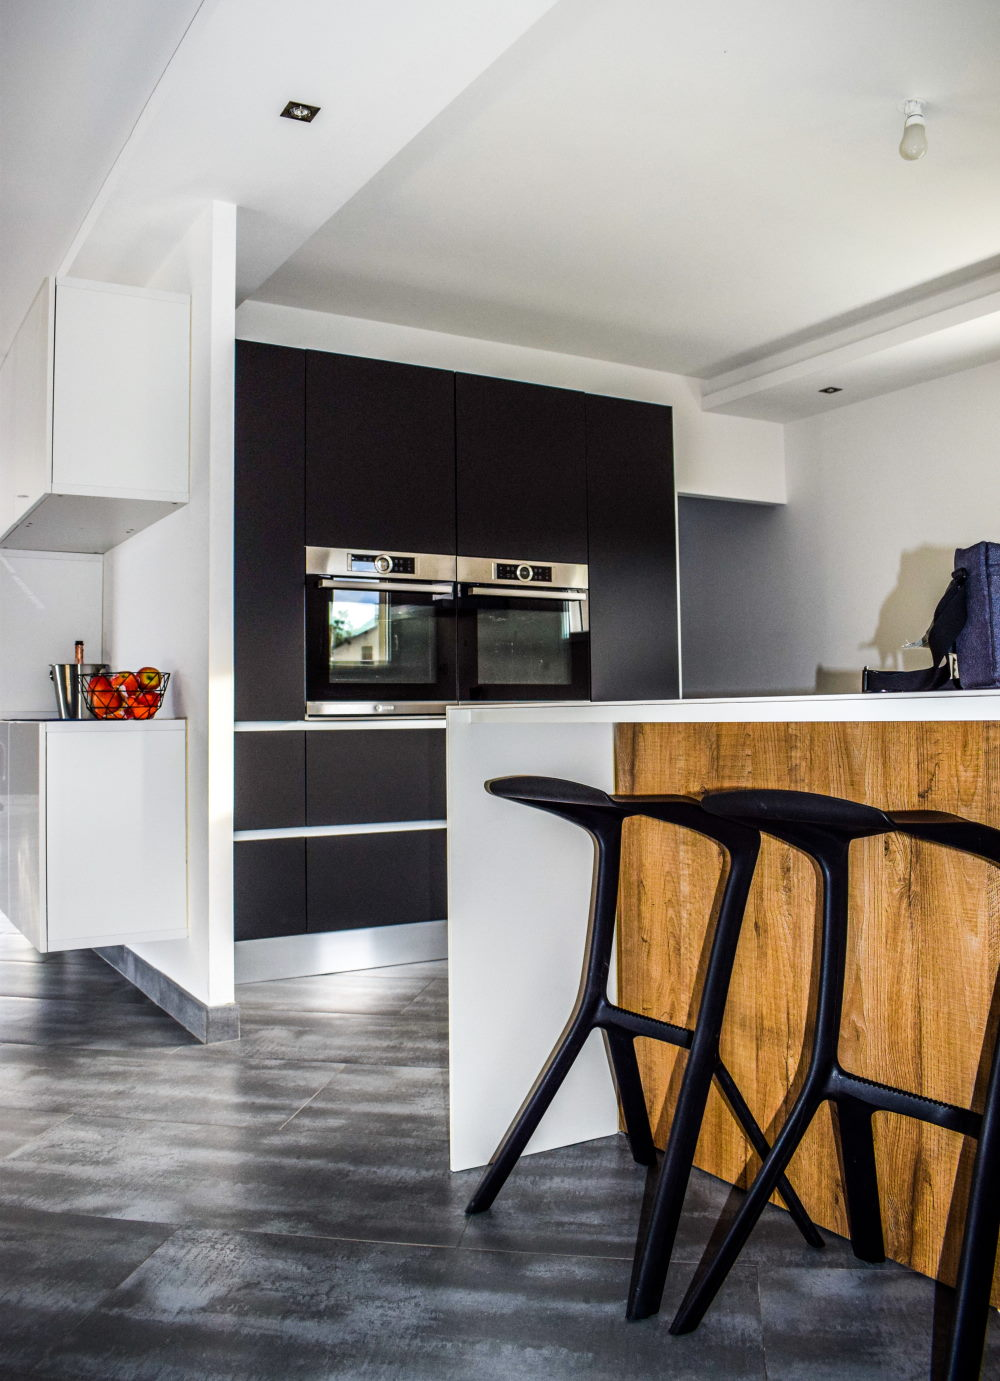 Kitchen Interior - Home extensions in Croydon